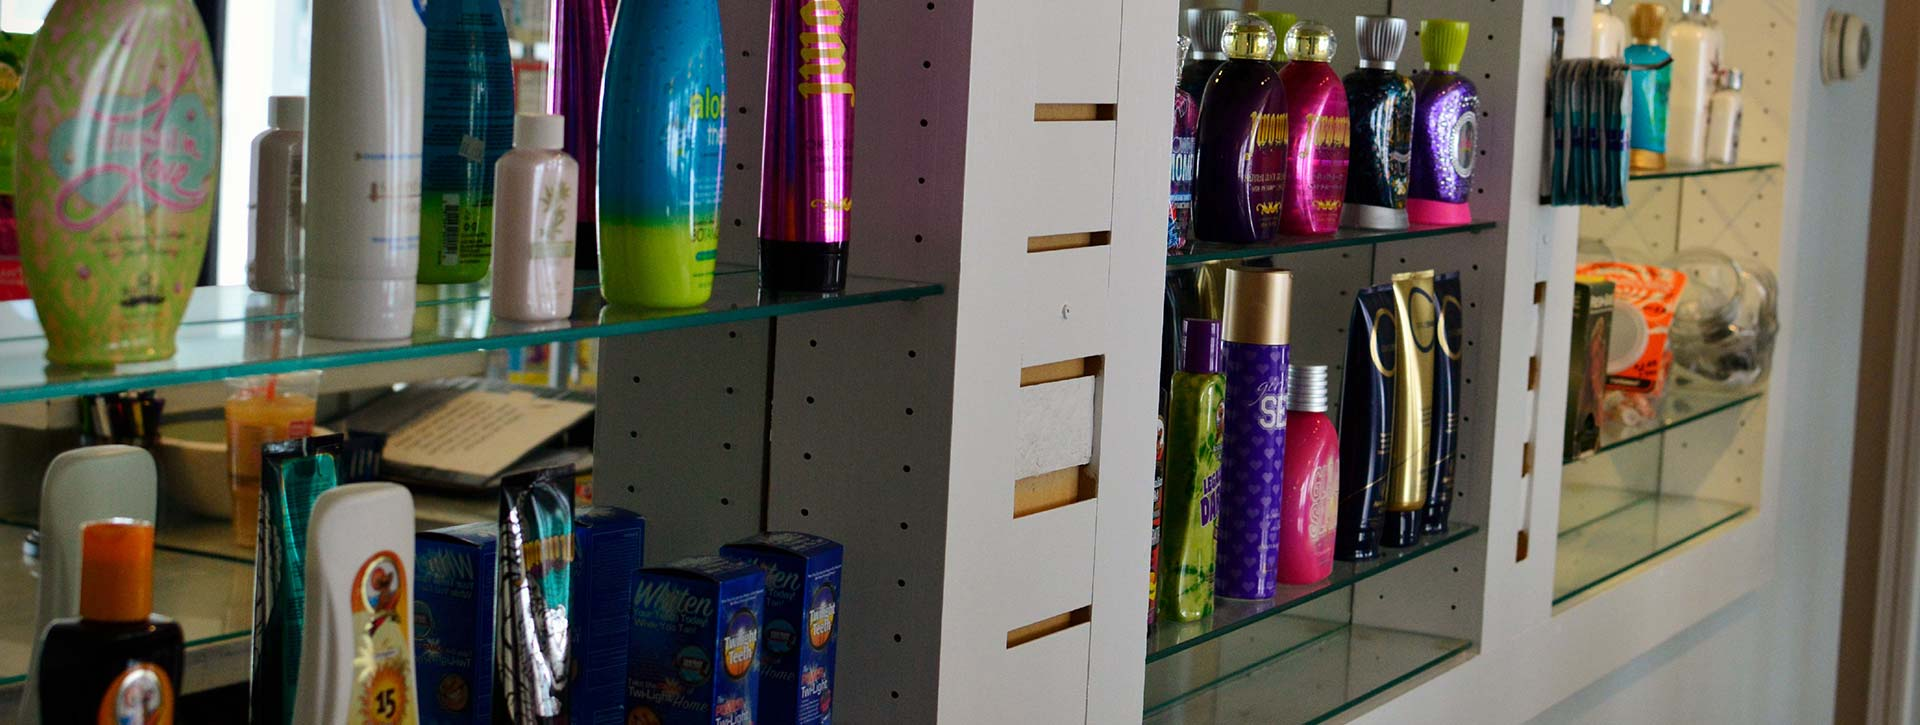 Many top of the line tanning and sunless products are available for purchase.